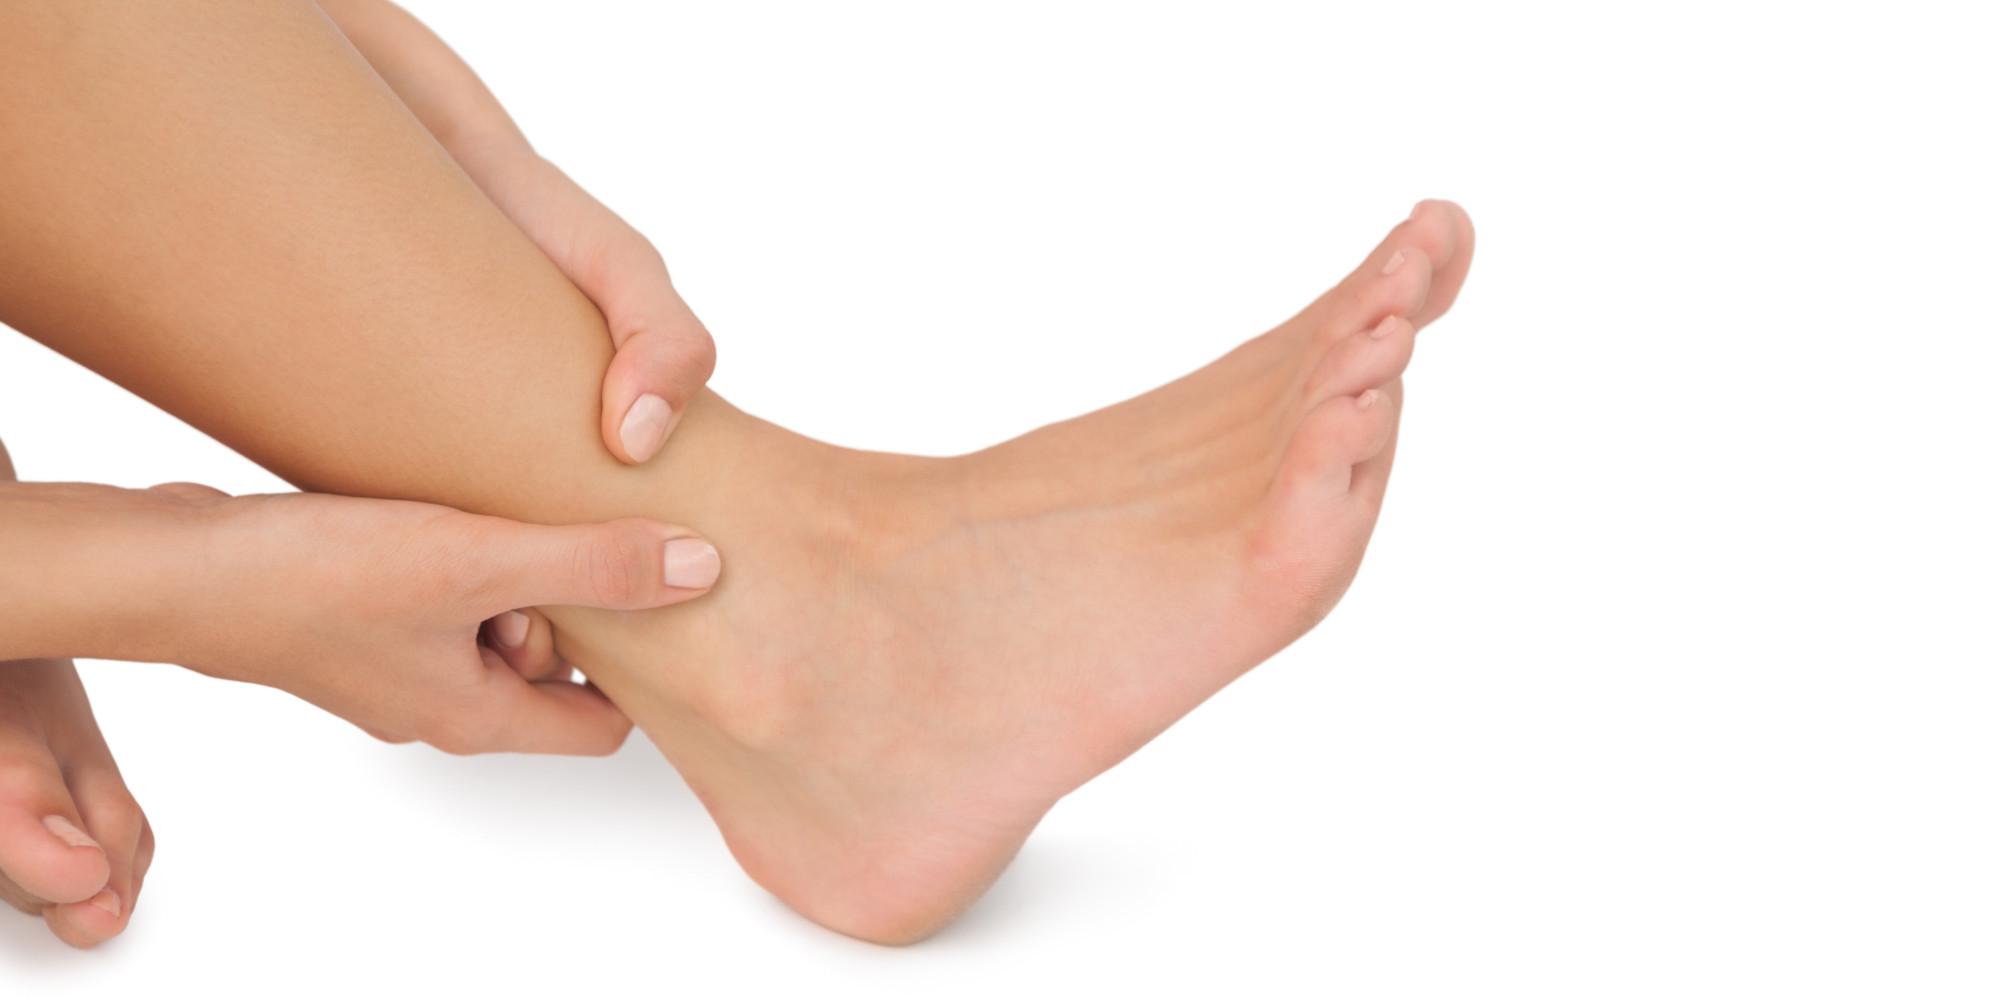 3k In Miles >> 7 Habits That Wreck Your Feet | HuffPost